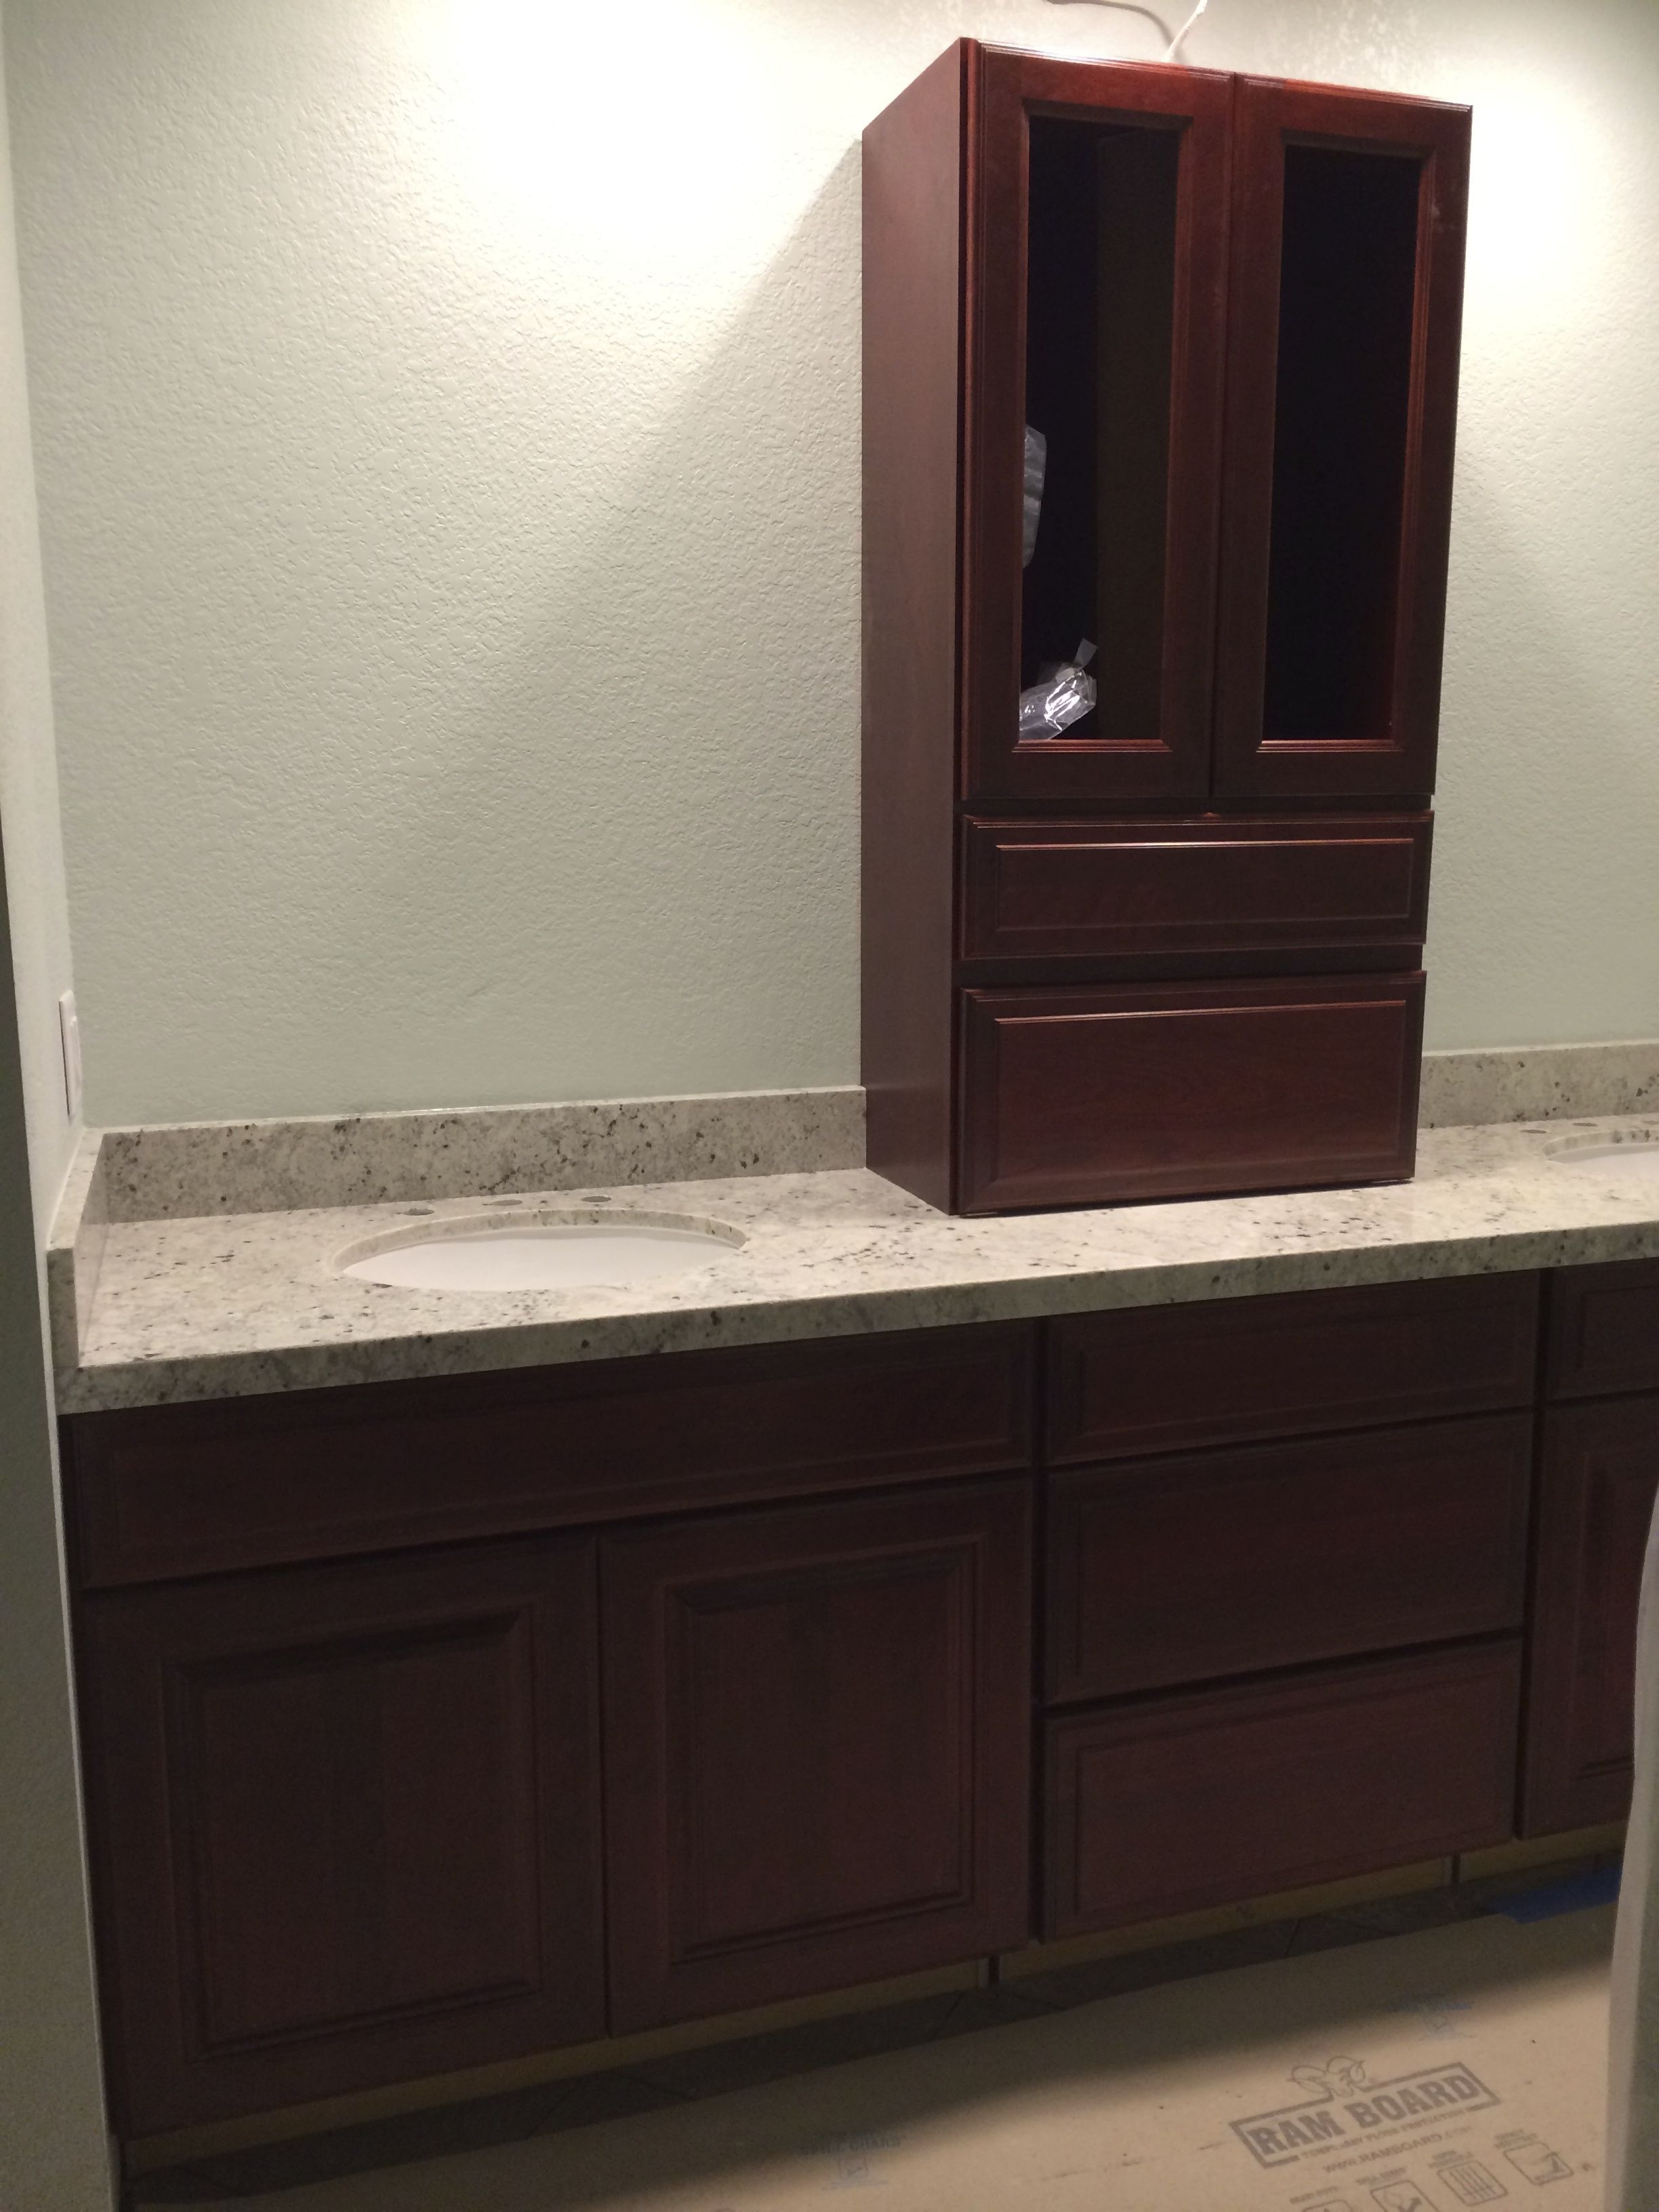 Bathroom Remodel Timeline day 16 - colonial white granite counter top installationj.e.